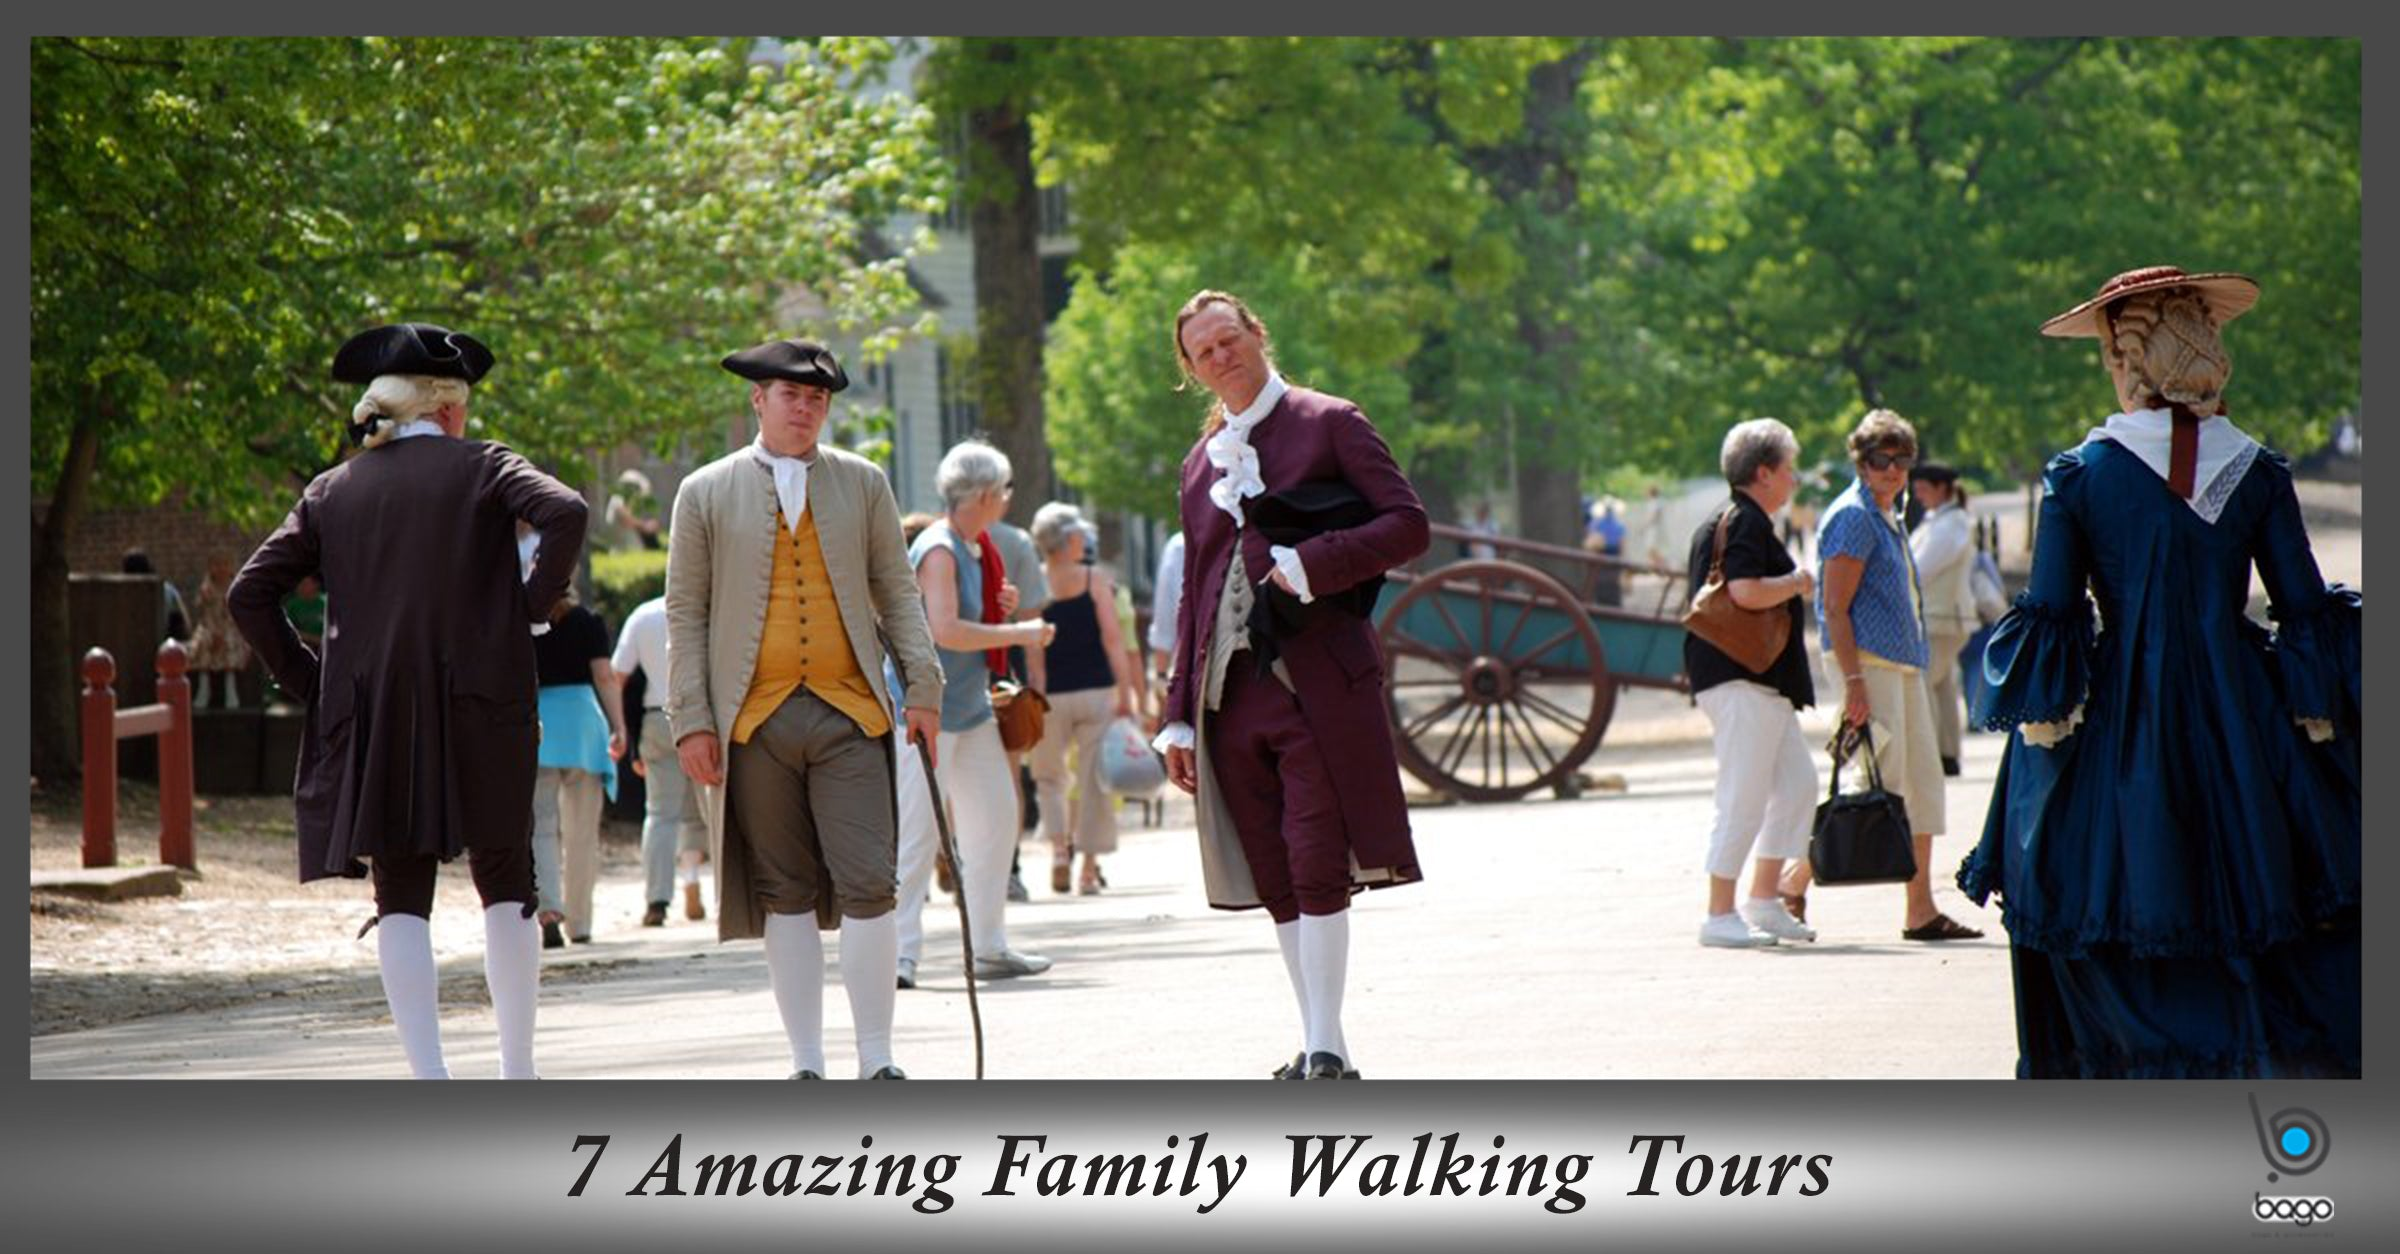 7 Amazing Family Walking Tours